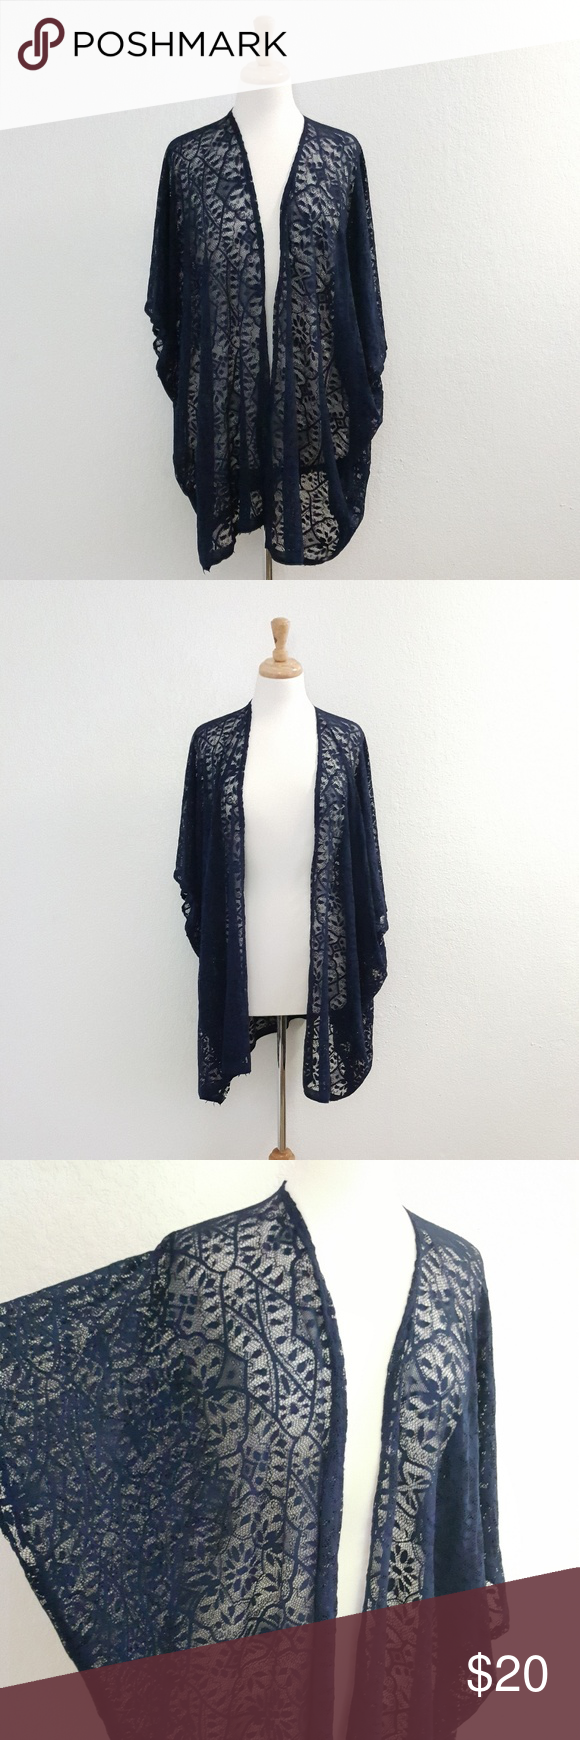 Navy Blue Lace Kimono Cardigan, Cover ups, Kimonos Designed with ...